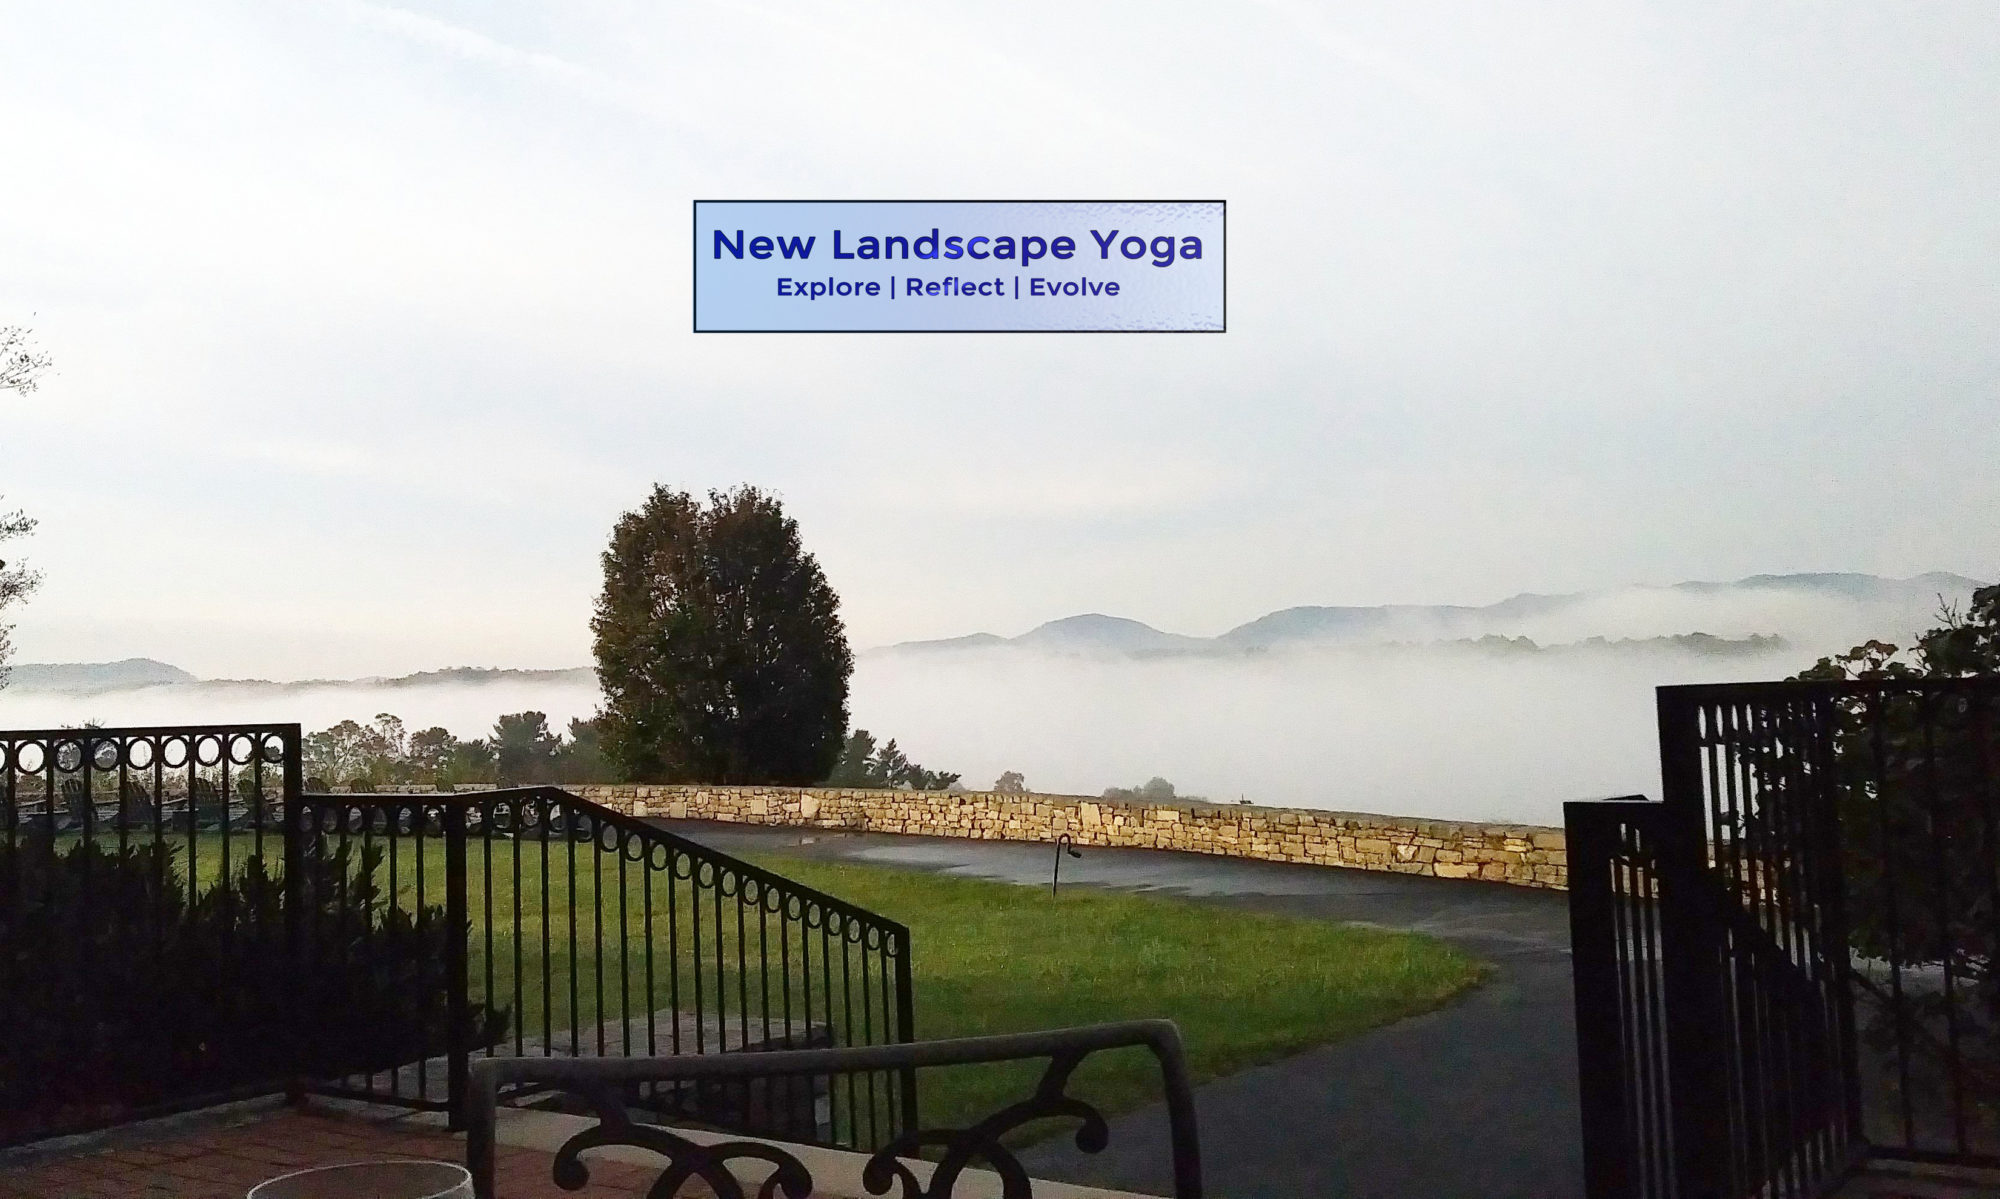 New Landscape Yoga - Yoga for life